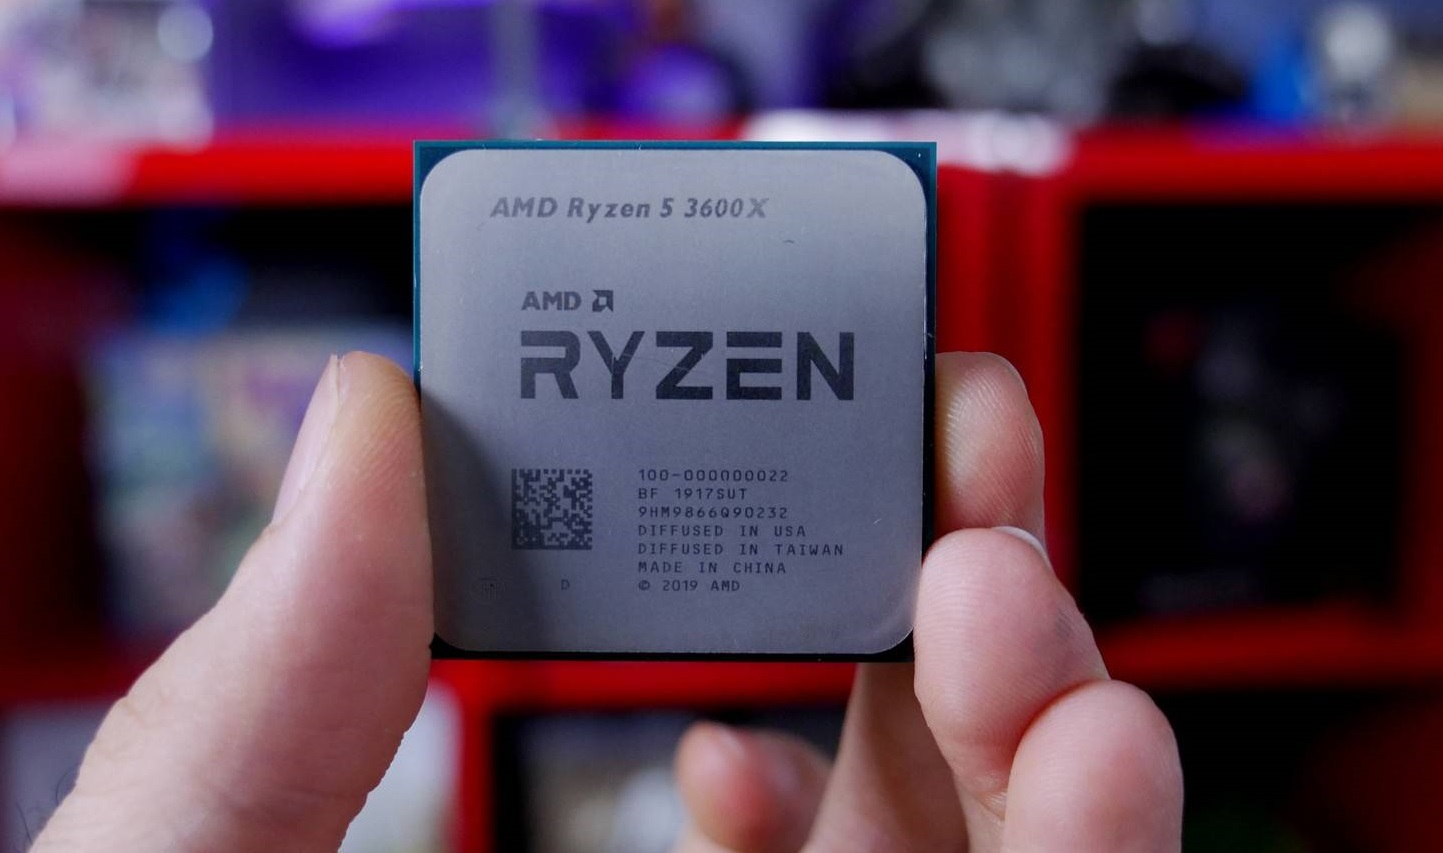 AMD is winning over PC gamers from Intel, suggests new report